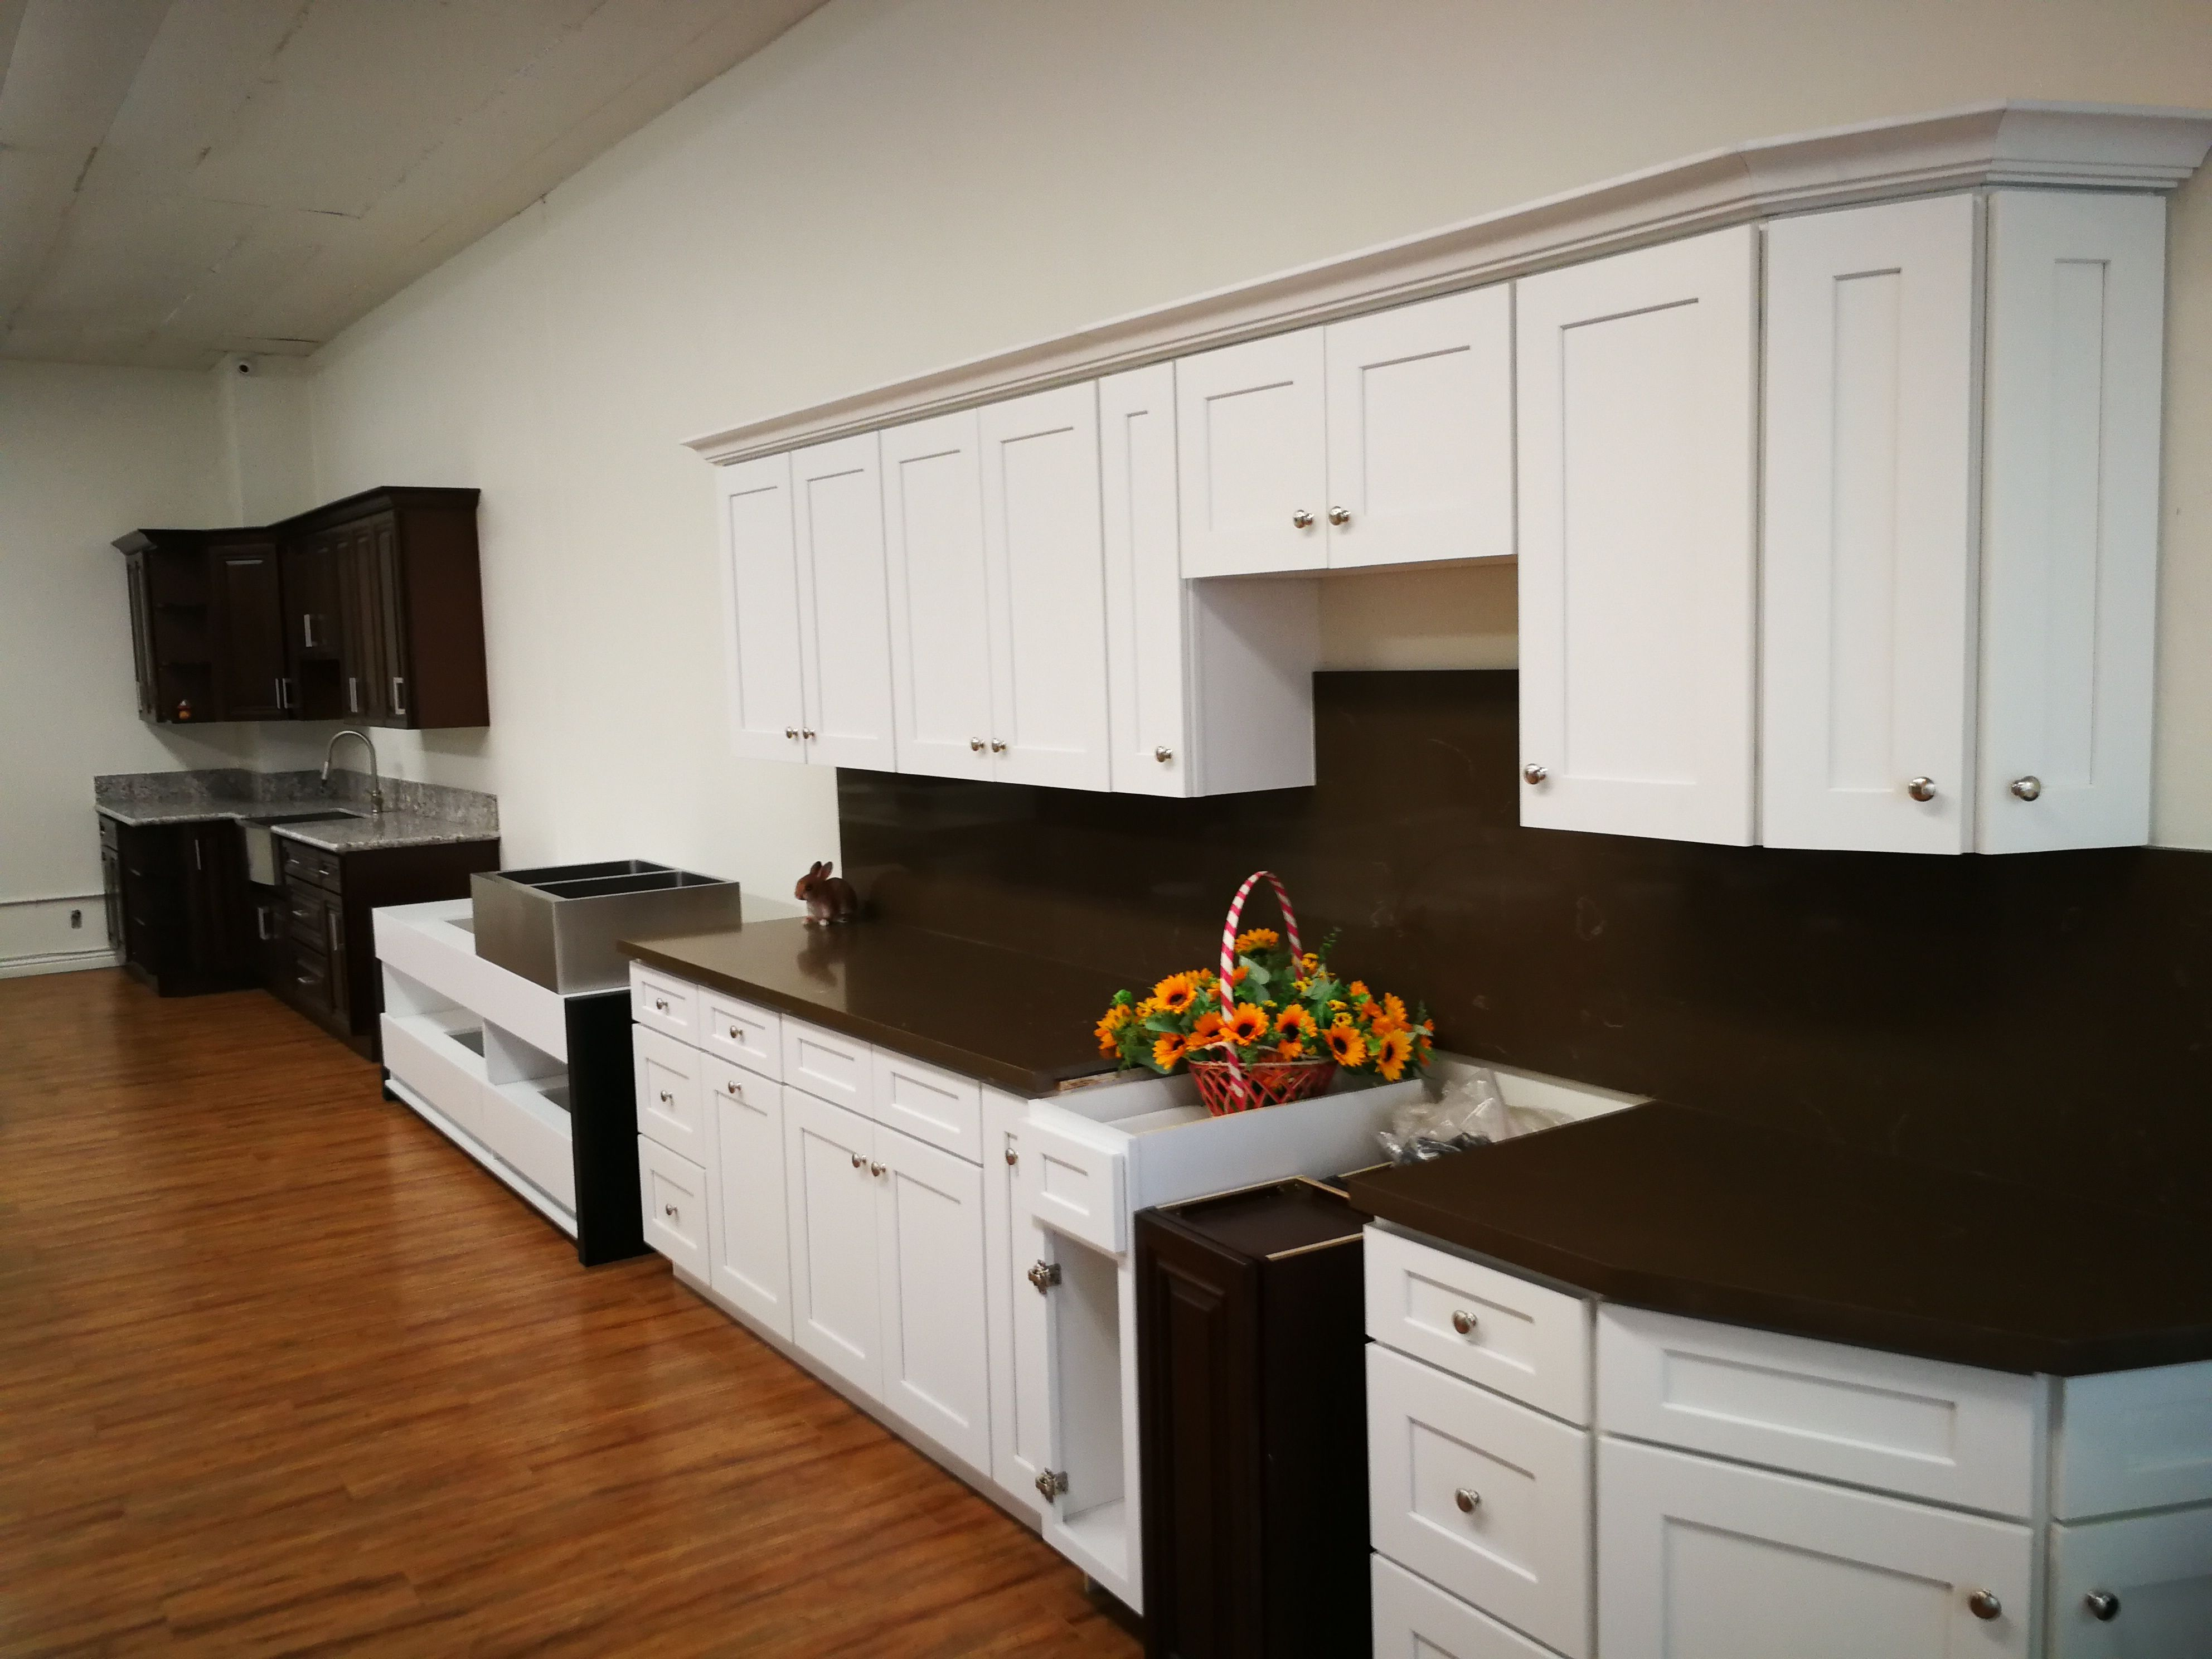 Pin By July Li Cabinetry Manufacturer On Kitchen Cabinetry Direct From China Cabinetry Kitchen Cabinetry Cabinet